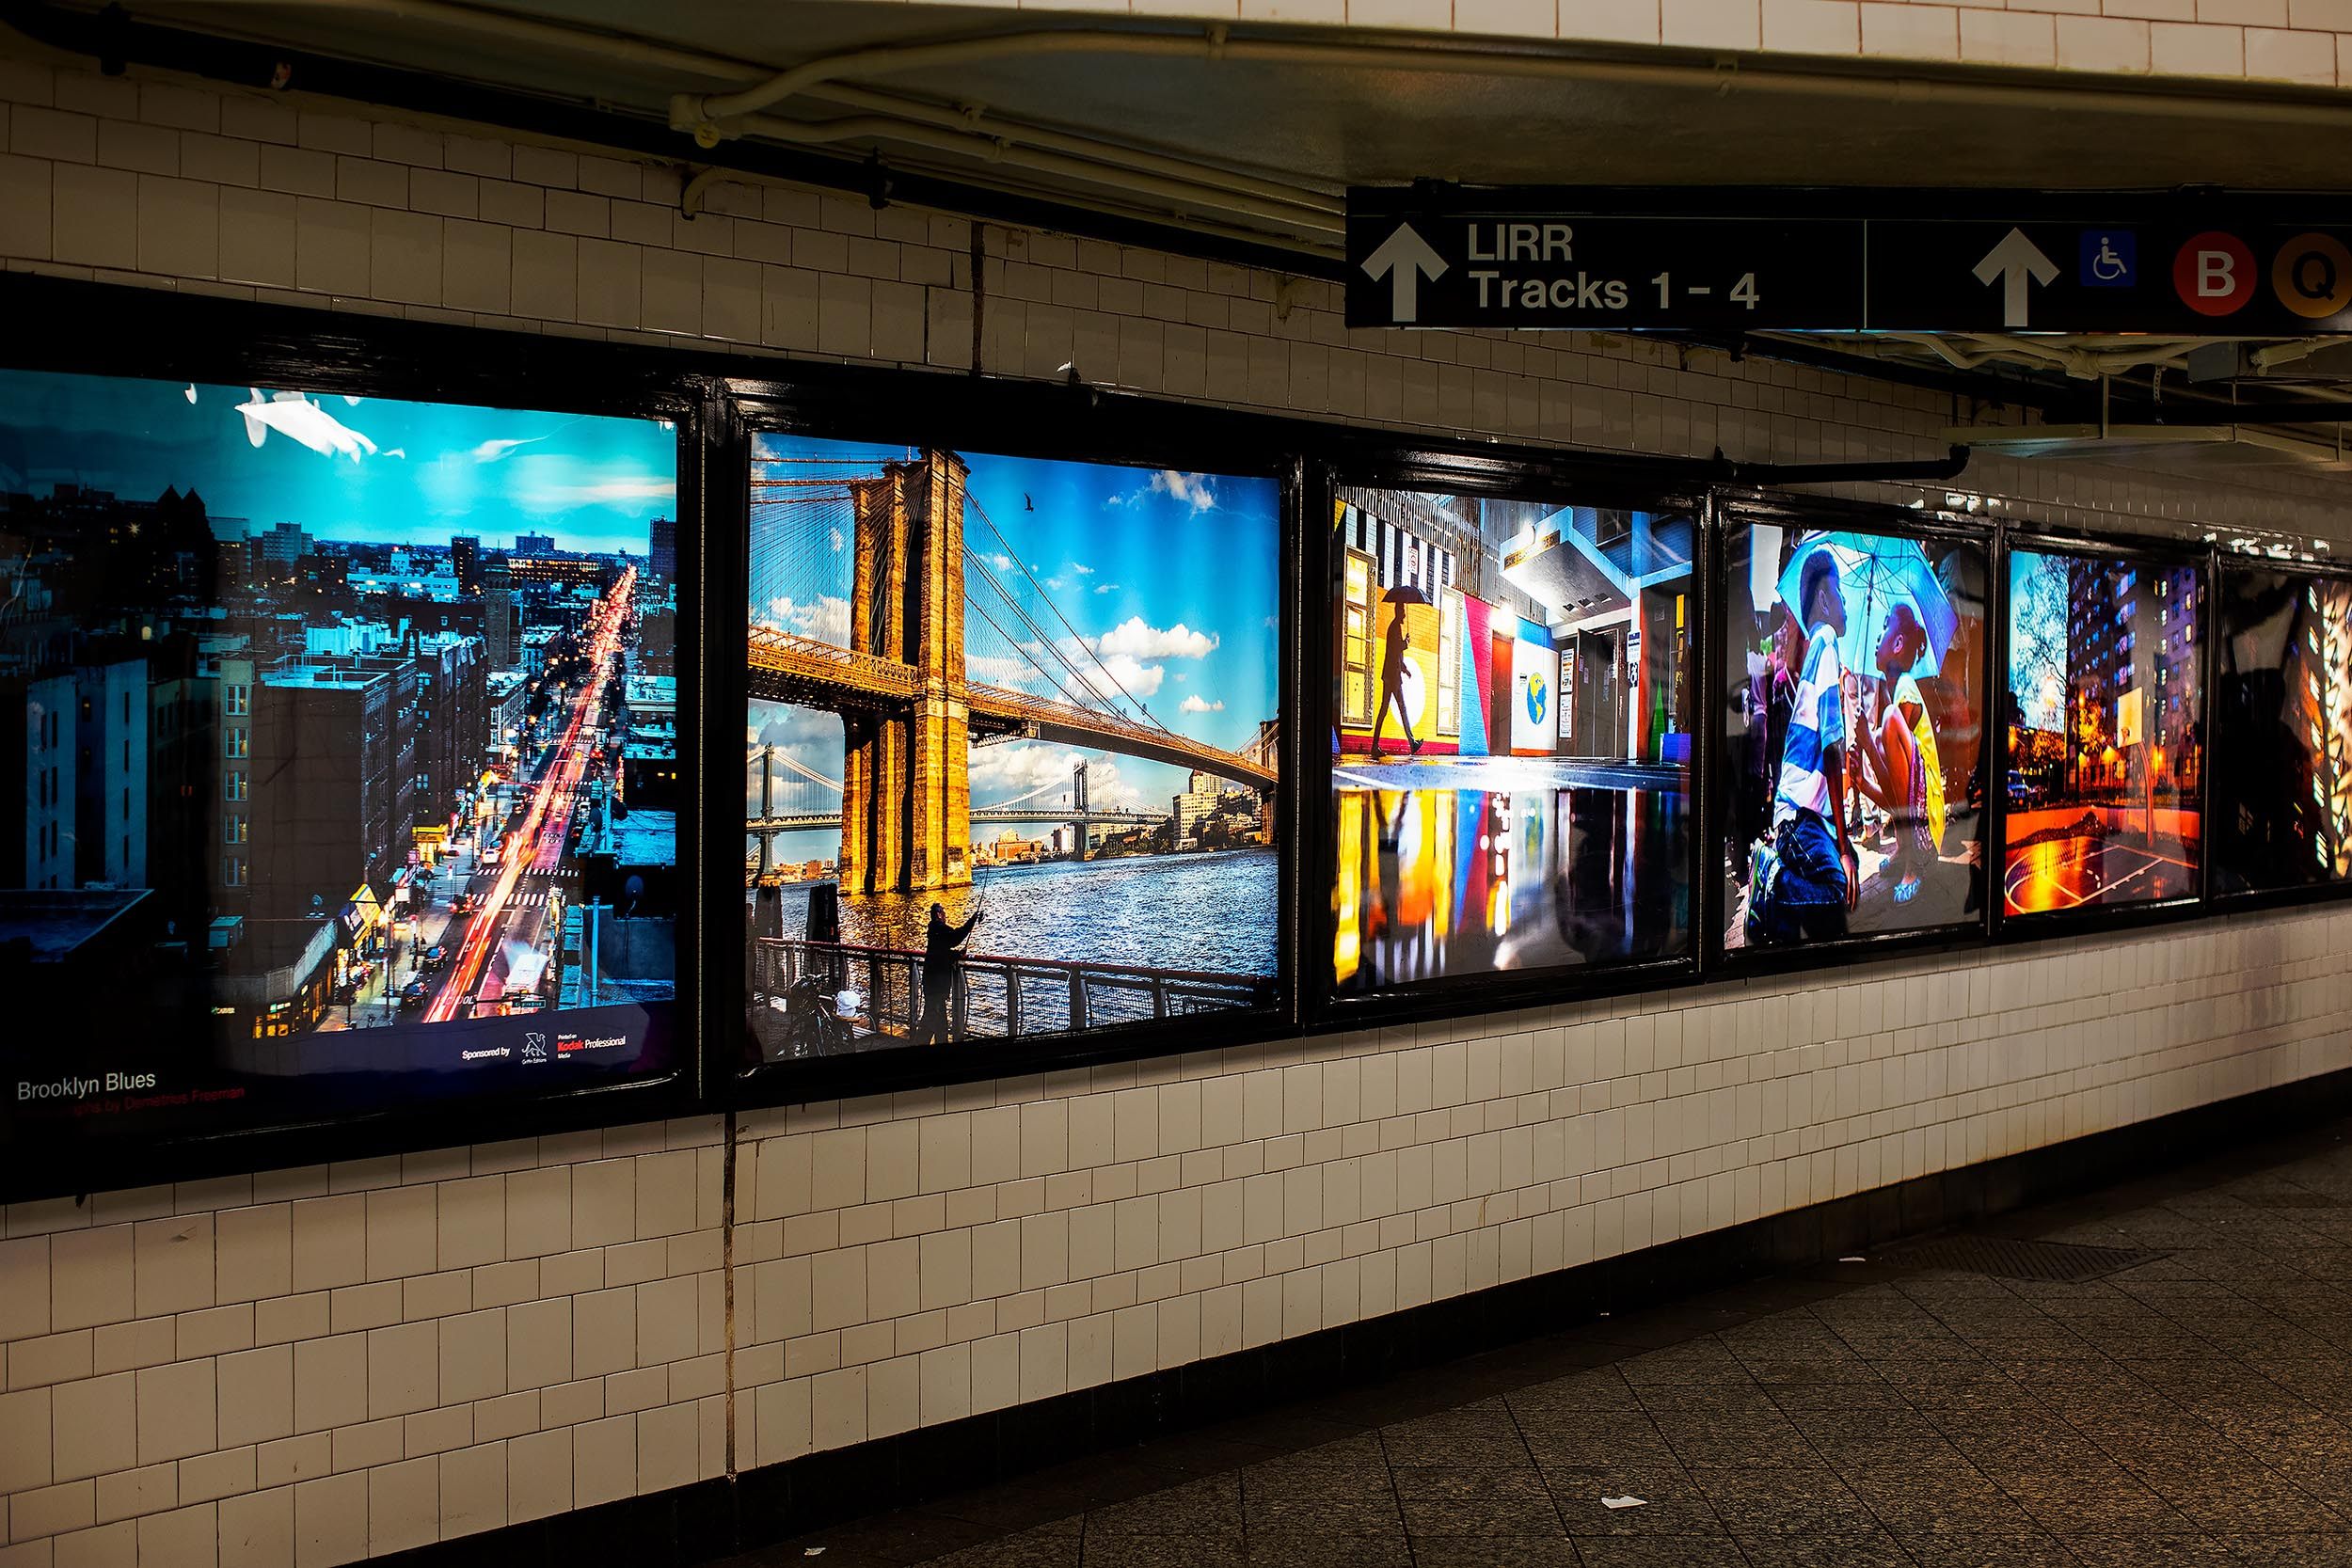 "Freeman collaborated with MTA Arts & Design to create a series of photographic moments that would captivate commuters while passing through the Atlantic Avenue - Barclays subway station. In speaking of the work, Freeman said, ""During my daily journeys around Brooklyn, I look at the people and places I encounter through the lens of a photojournalist. I am constantly seeking to capture untold stories, beautiful scenes and unique moments that I hope show a unique view of Brooklyn."" Freeman is originally from Atlanta, GA, Studied Photojournalism and Political Science at Western Kentucky University and is a Brooklyn resident. He is a freelance photographer for The New York Times."